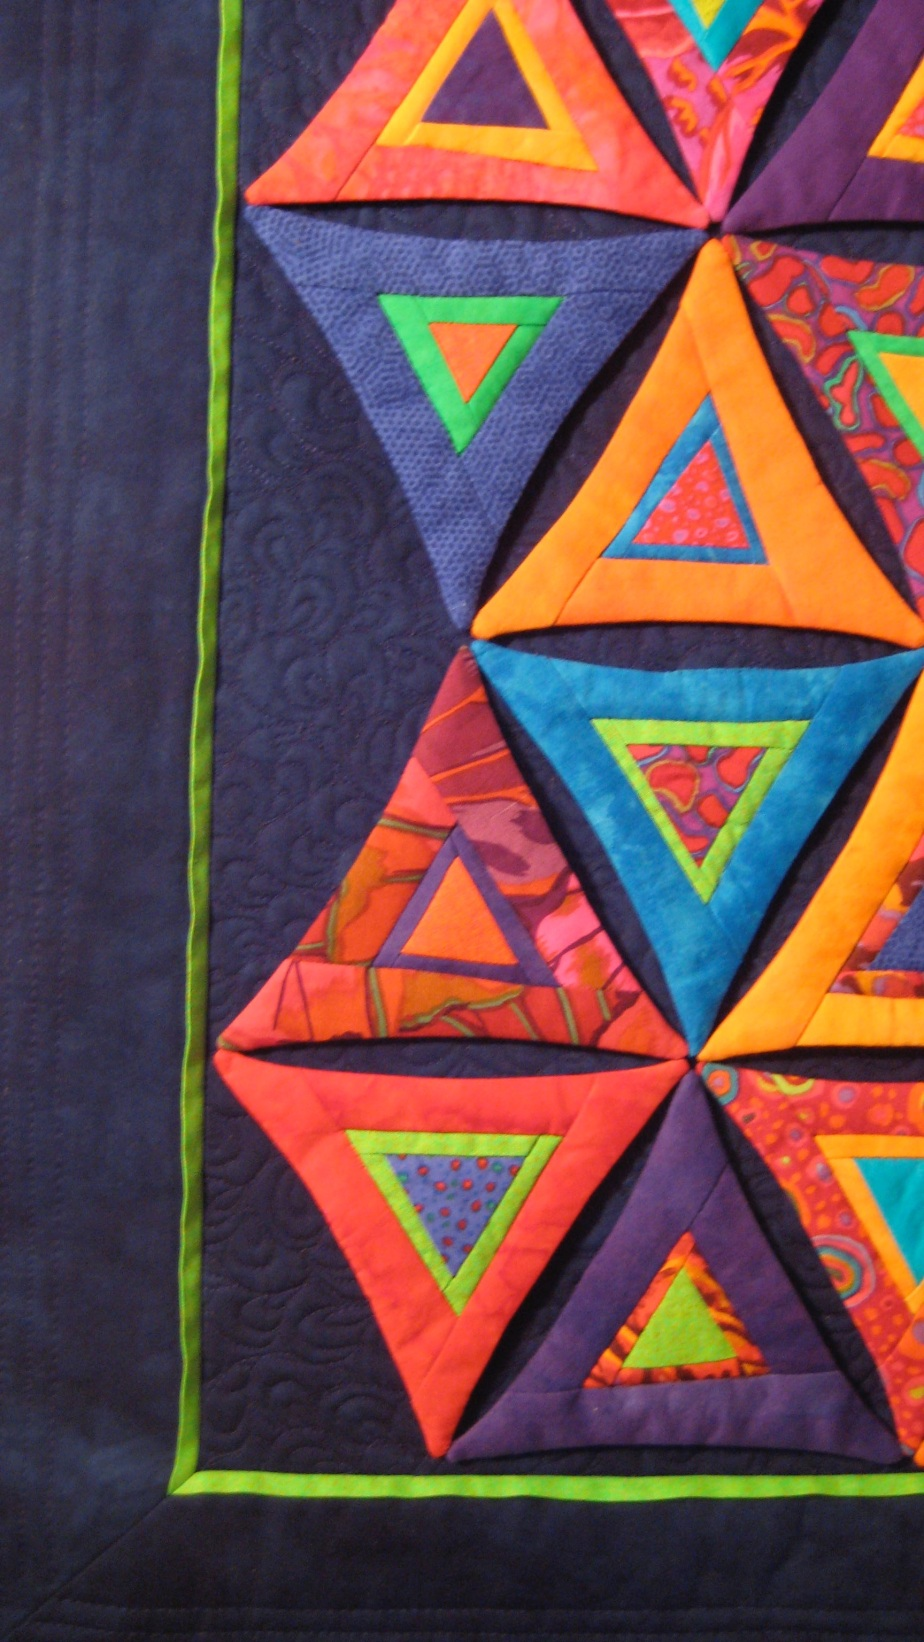 Triangle detail